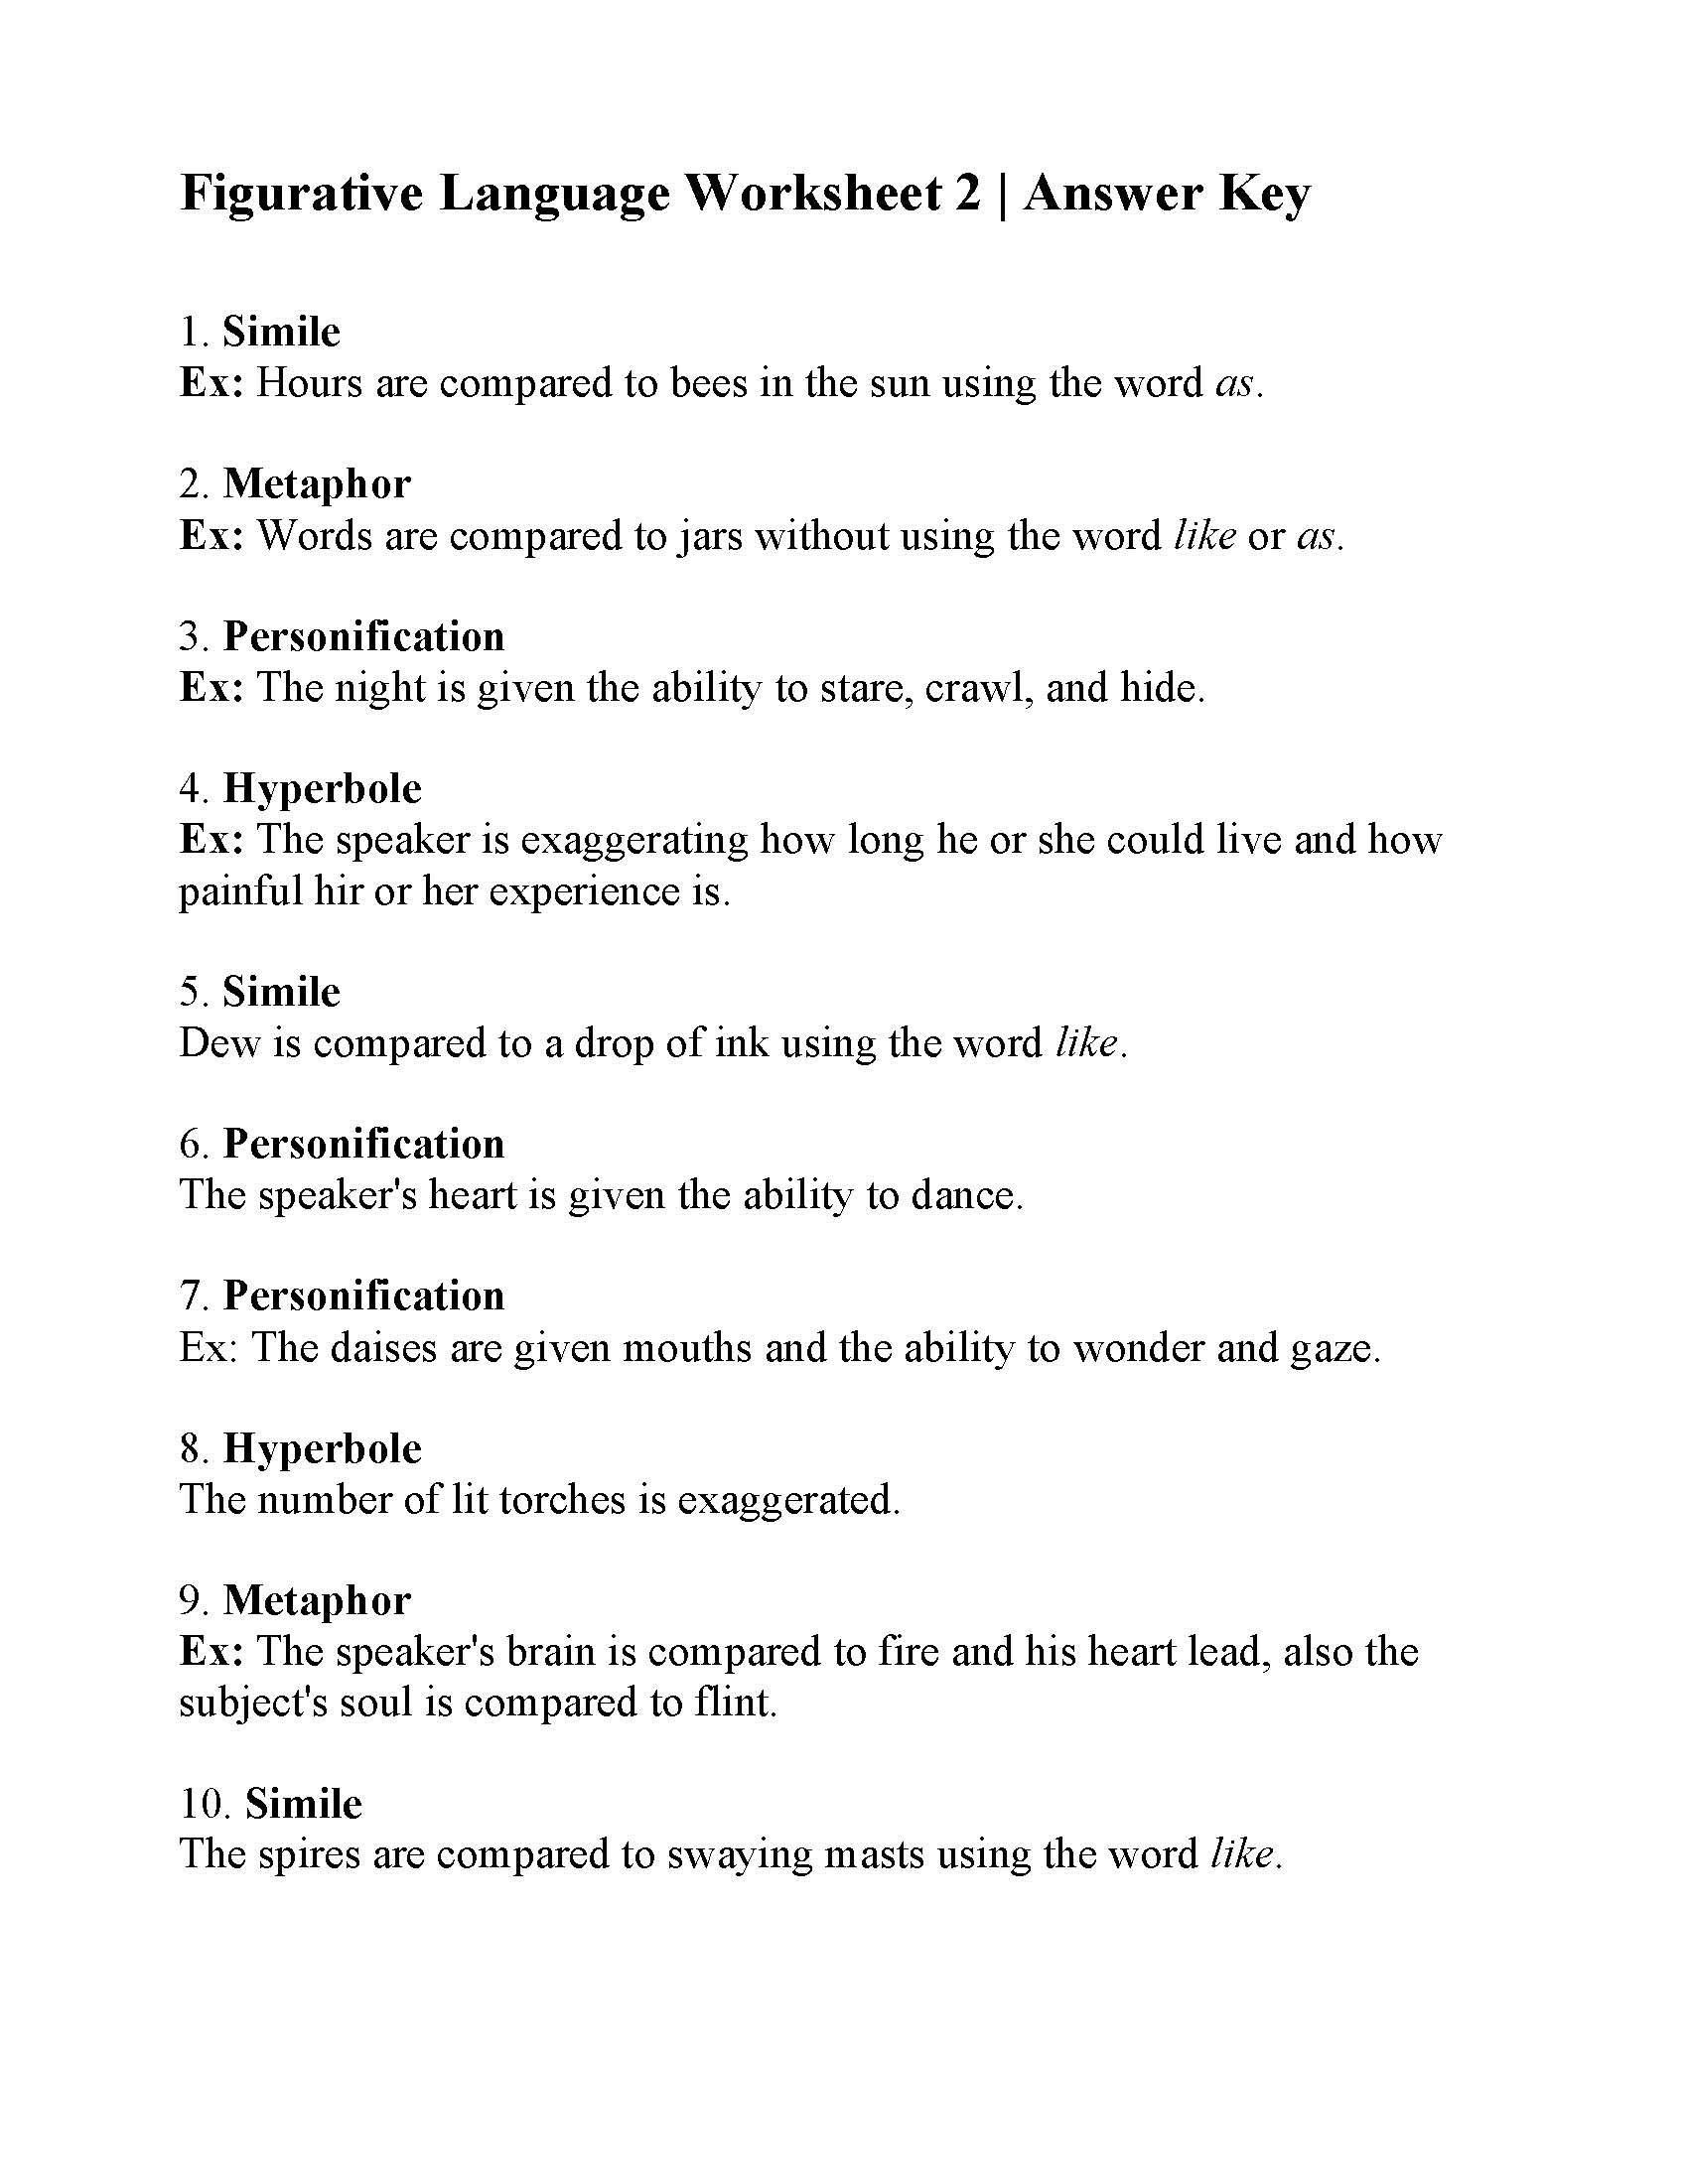 Figurative Language Worksheets 5th Grade This Is The